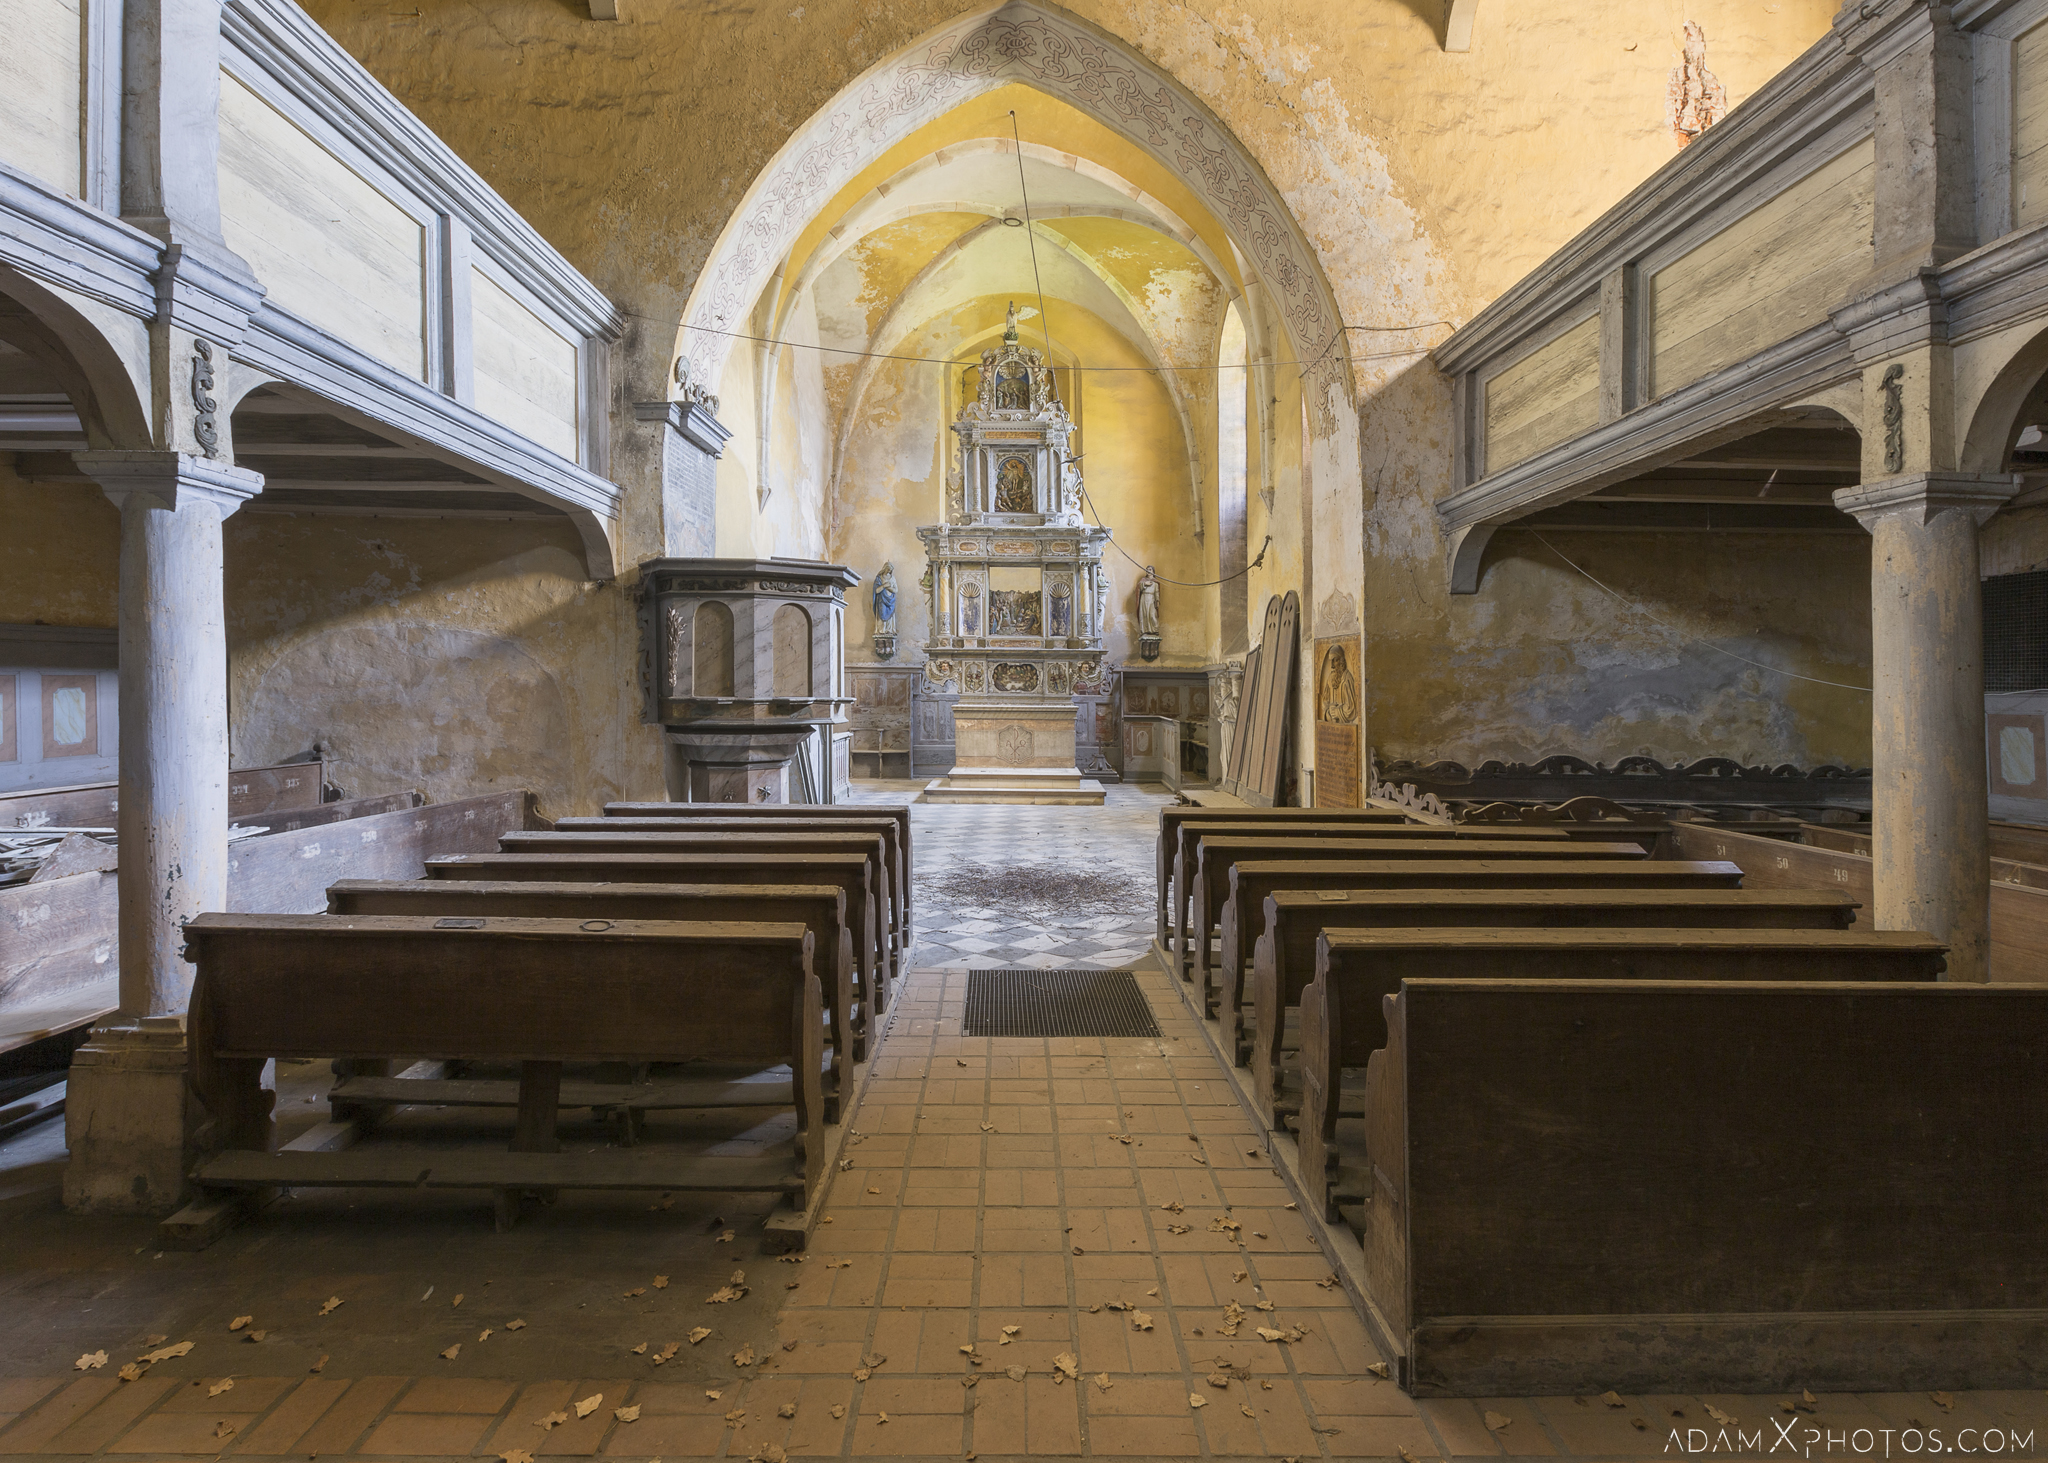 Main aisle altar pews Chapel B Church Urbex Poland Adam X Urban Exploration Permission Visit Access 2016 Abandoned decay lost forgotten derelict location haunting eerie